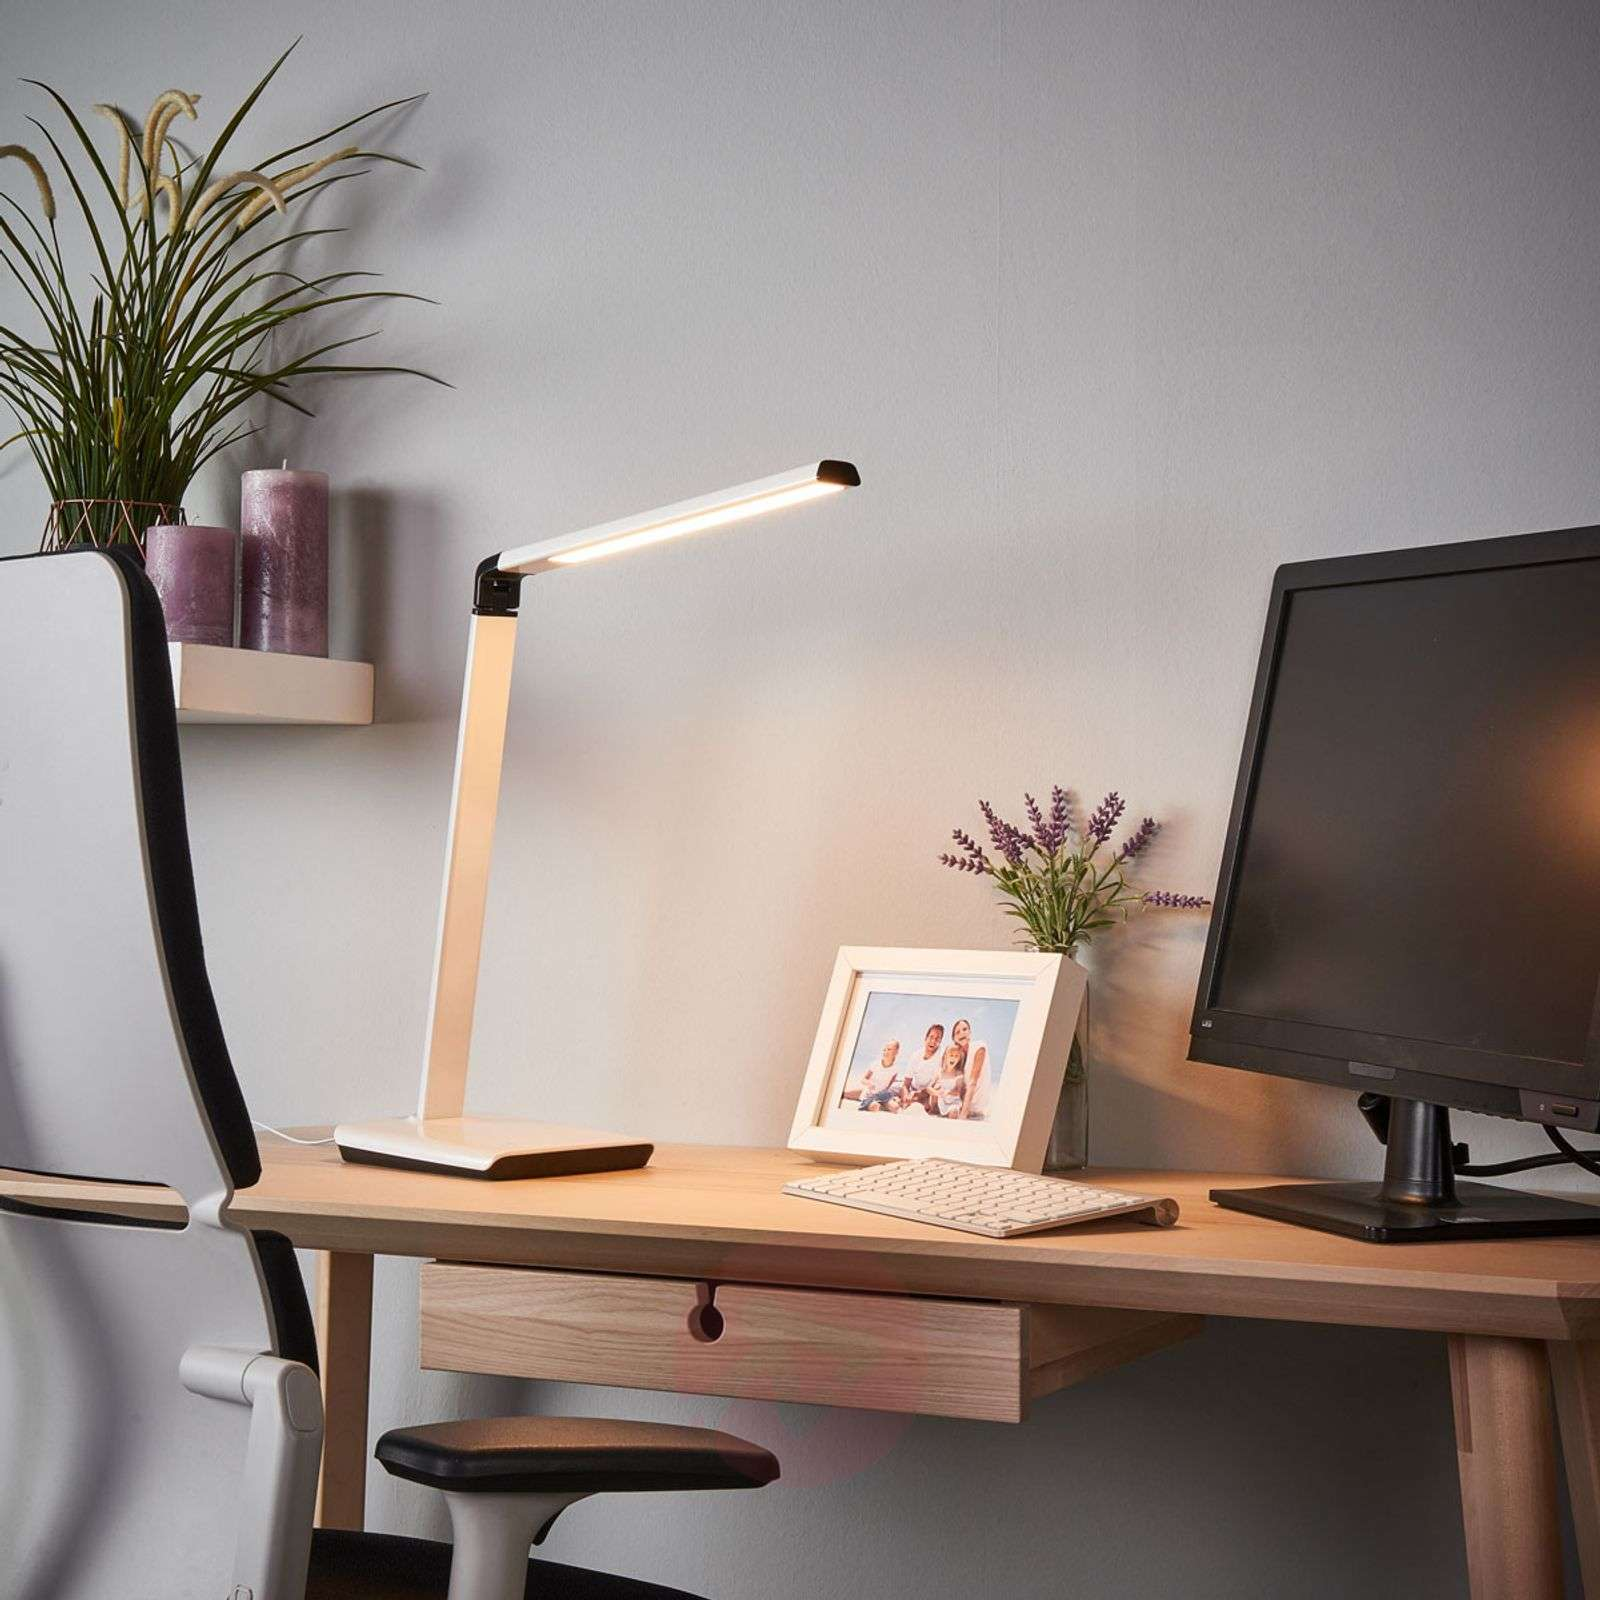 Dimmable LED desk lamp Kuno with USB port-9643034-02